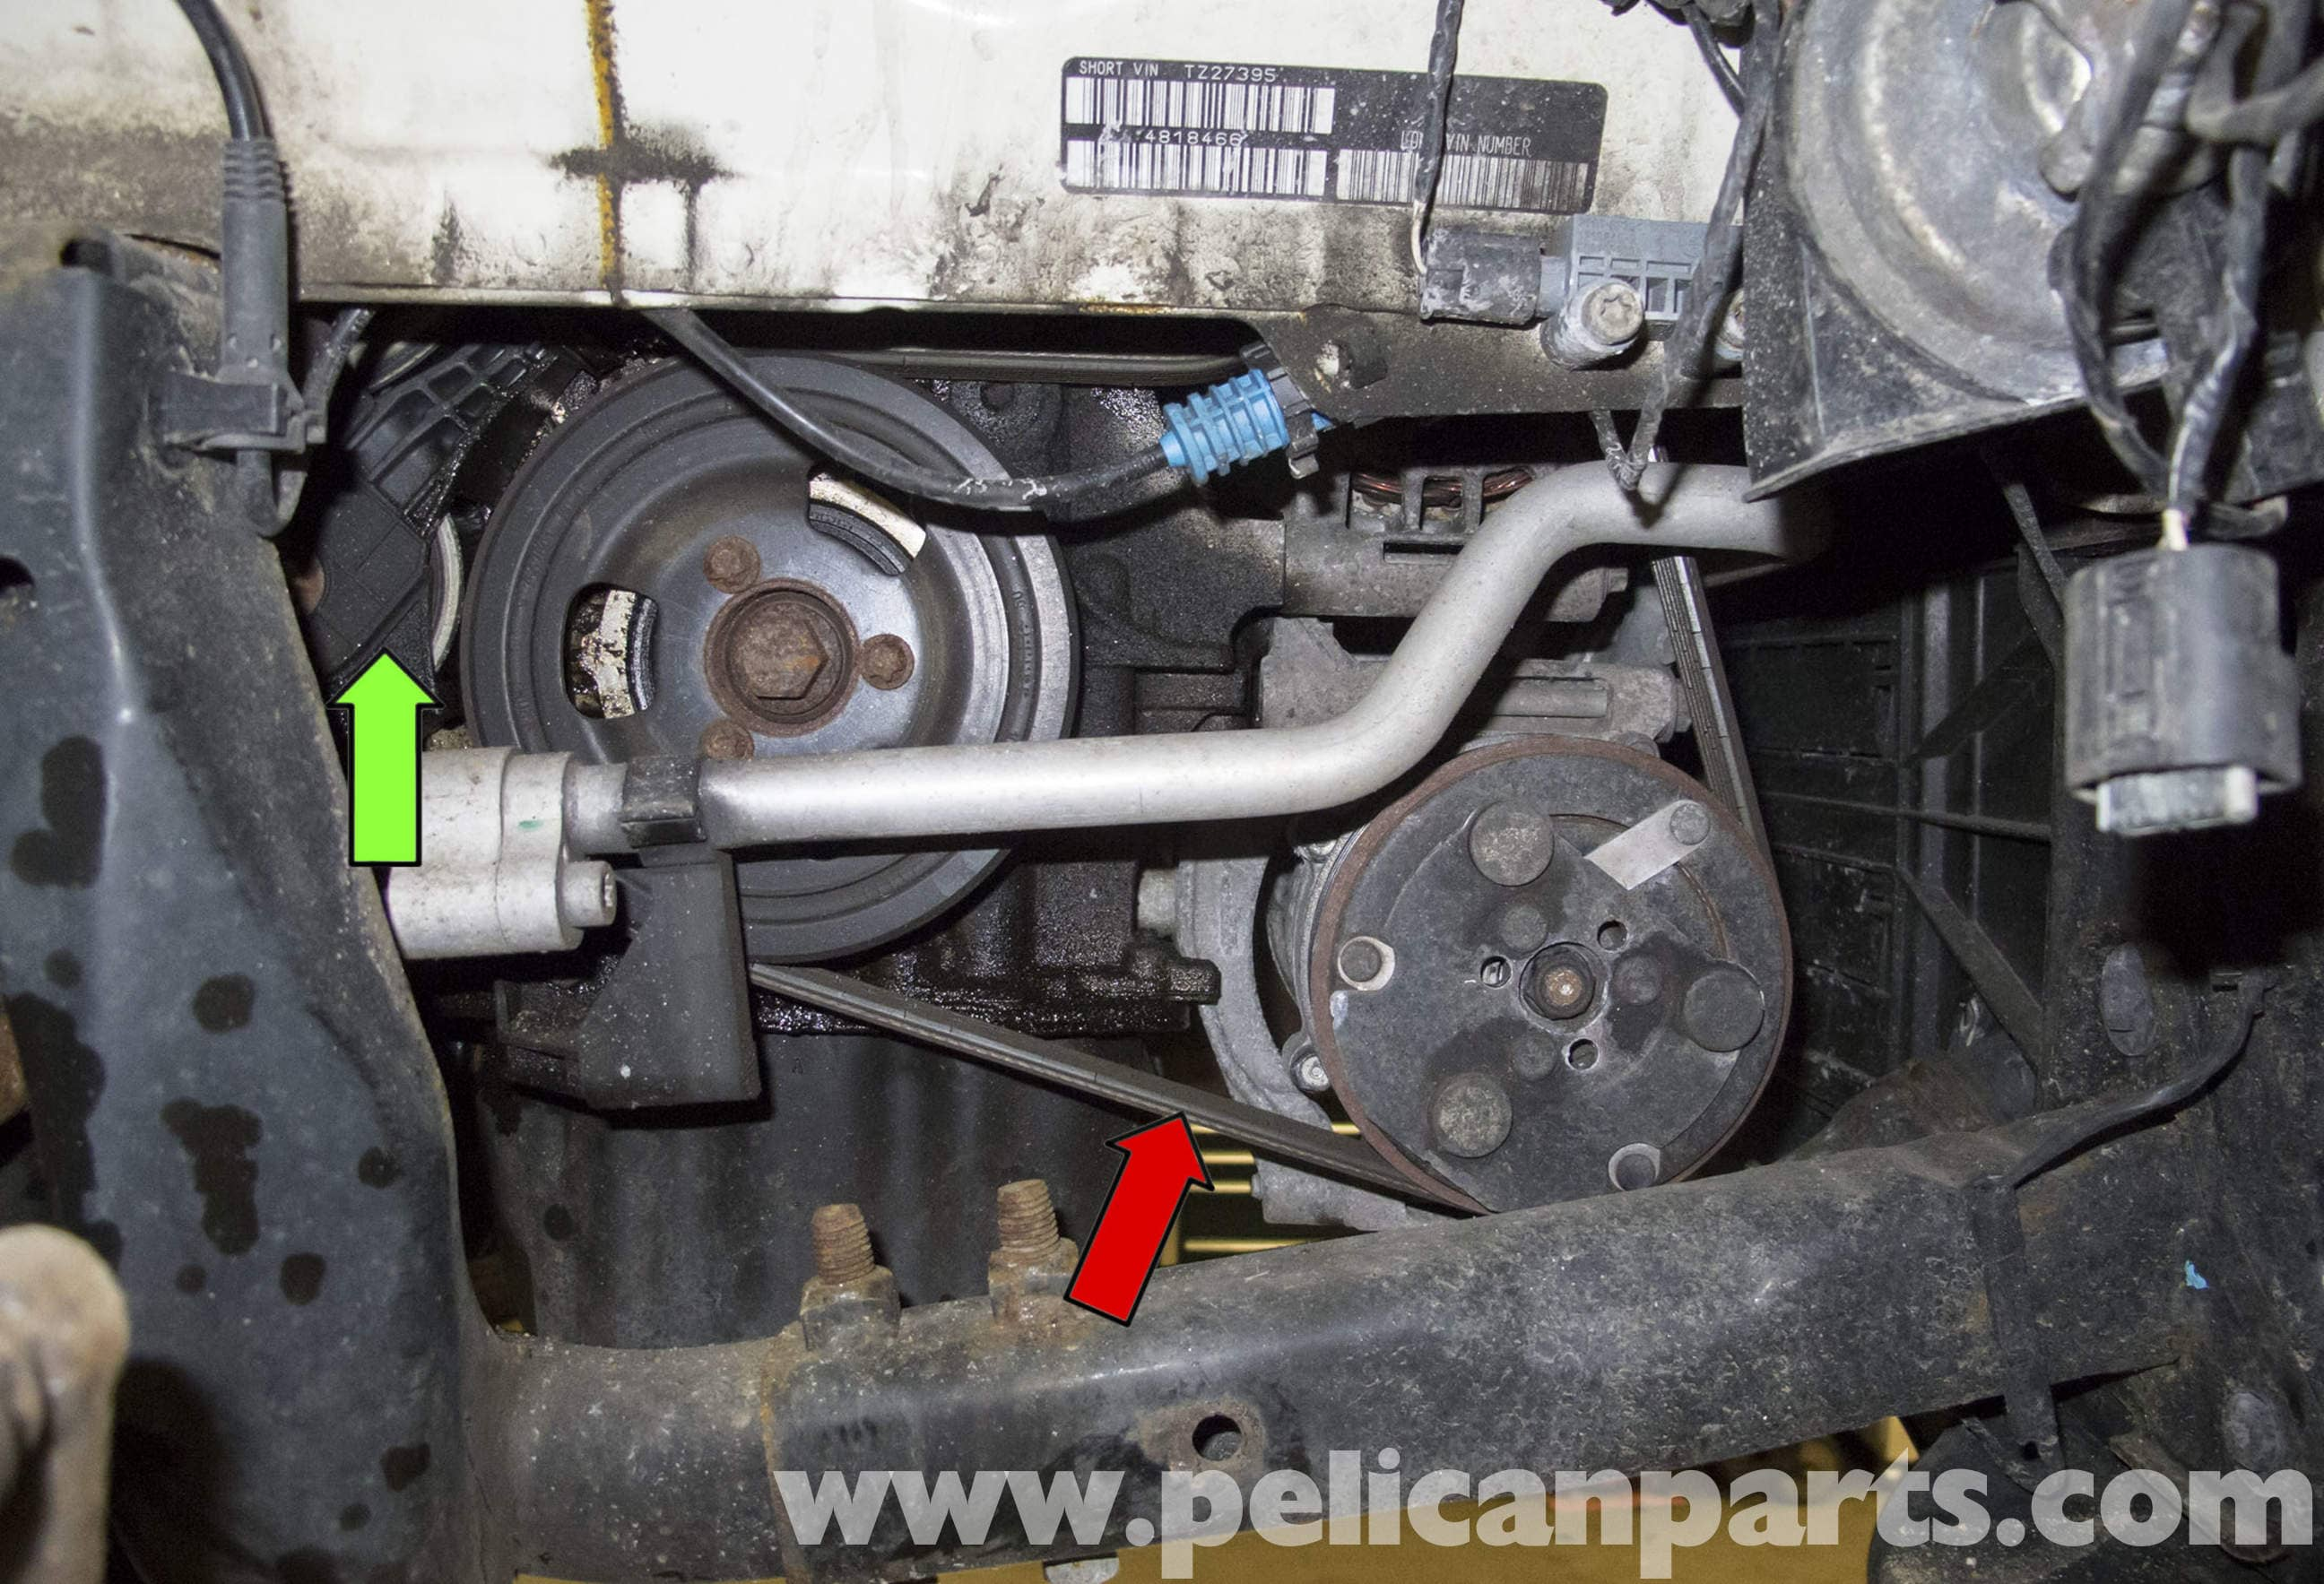 MINI Cooper R56 Drive Belt Replacement (2007-2011) | Pelican Parts on 2010 ford f150 engine diagram, 2010 mercury milan engine diagram, 2010 honda cr-v engine diagram, 2010 lincoln mkx engine diagram, 2010 ford fusion hybrid engine diagram, 2010 toyota tundra engine diagram, 2010 honda pilot engine diagram, 2010 toyota matrix engine diagram, 2010 dodge ram 1500 engine diagram, 2010 cadillac srx engine diagram, 2010 ford flex engine diagram, 2010 gmc terrain engine diagram, 2010 chrysler sebring engine diagram, 2010 jeep grand cherokee engine diagram, 2010 dodge challenger engine diagram, 2010 ford explorer engine diagram, 2010 dodge charger engine diagram, 2010 jeep patriot engine diagram, 2010 mazda 5 engine diagram, 2010 chevrolet impala engine diagram,